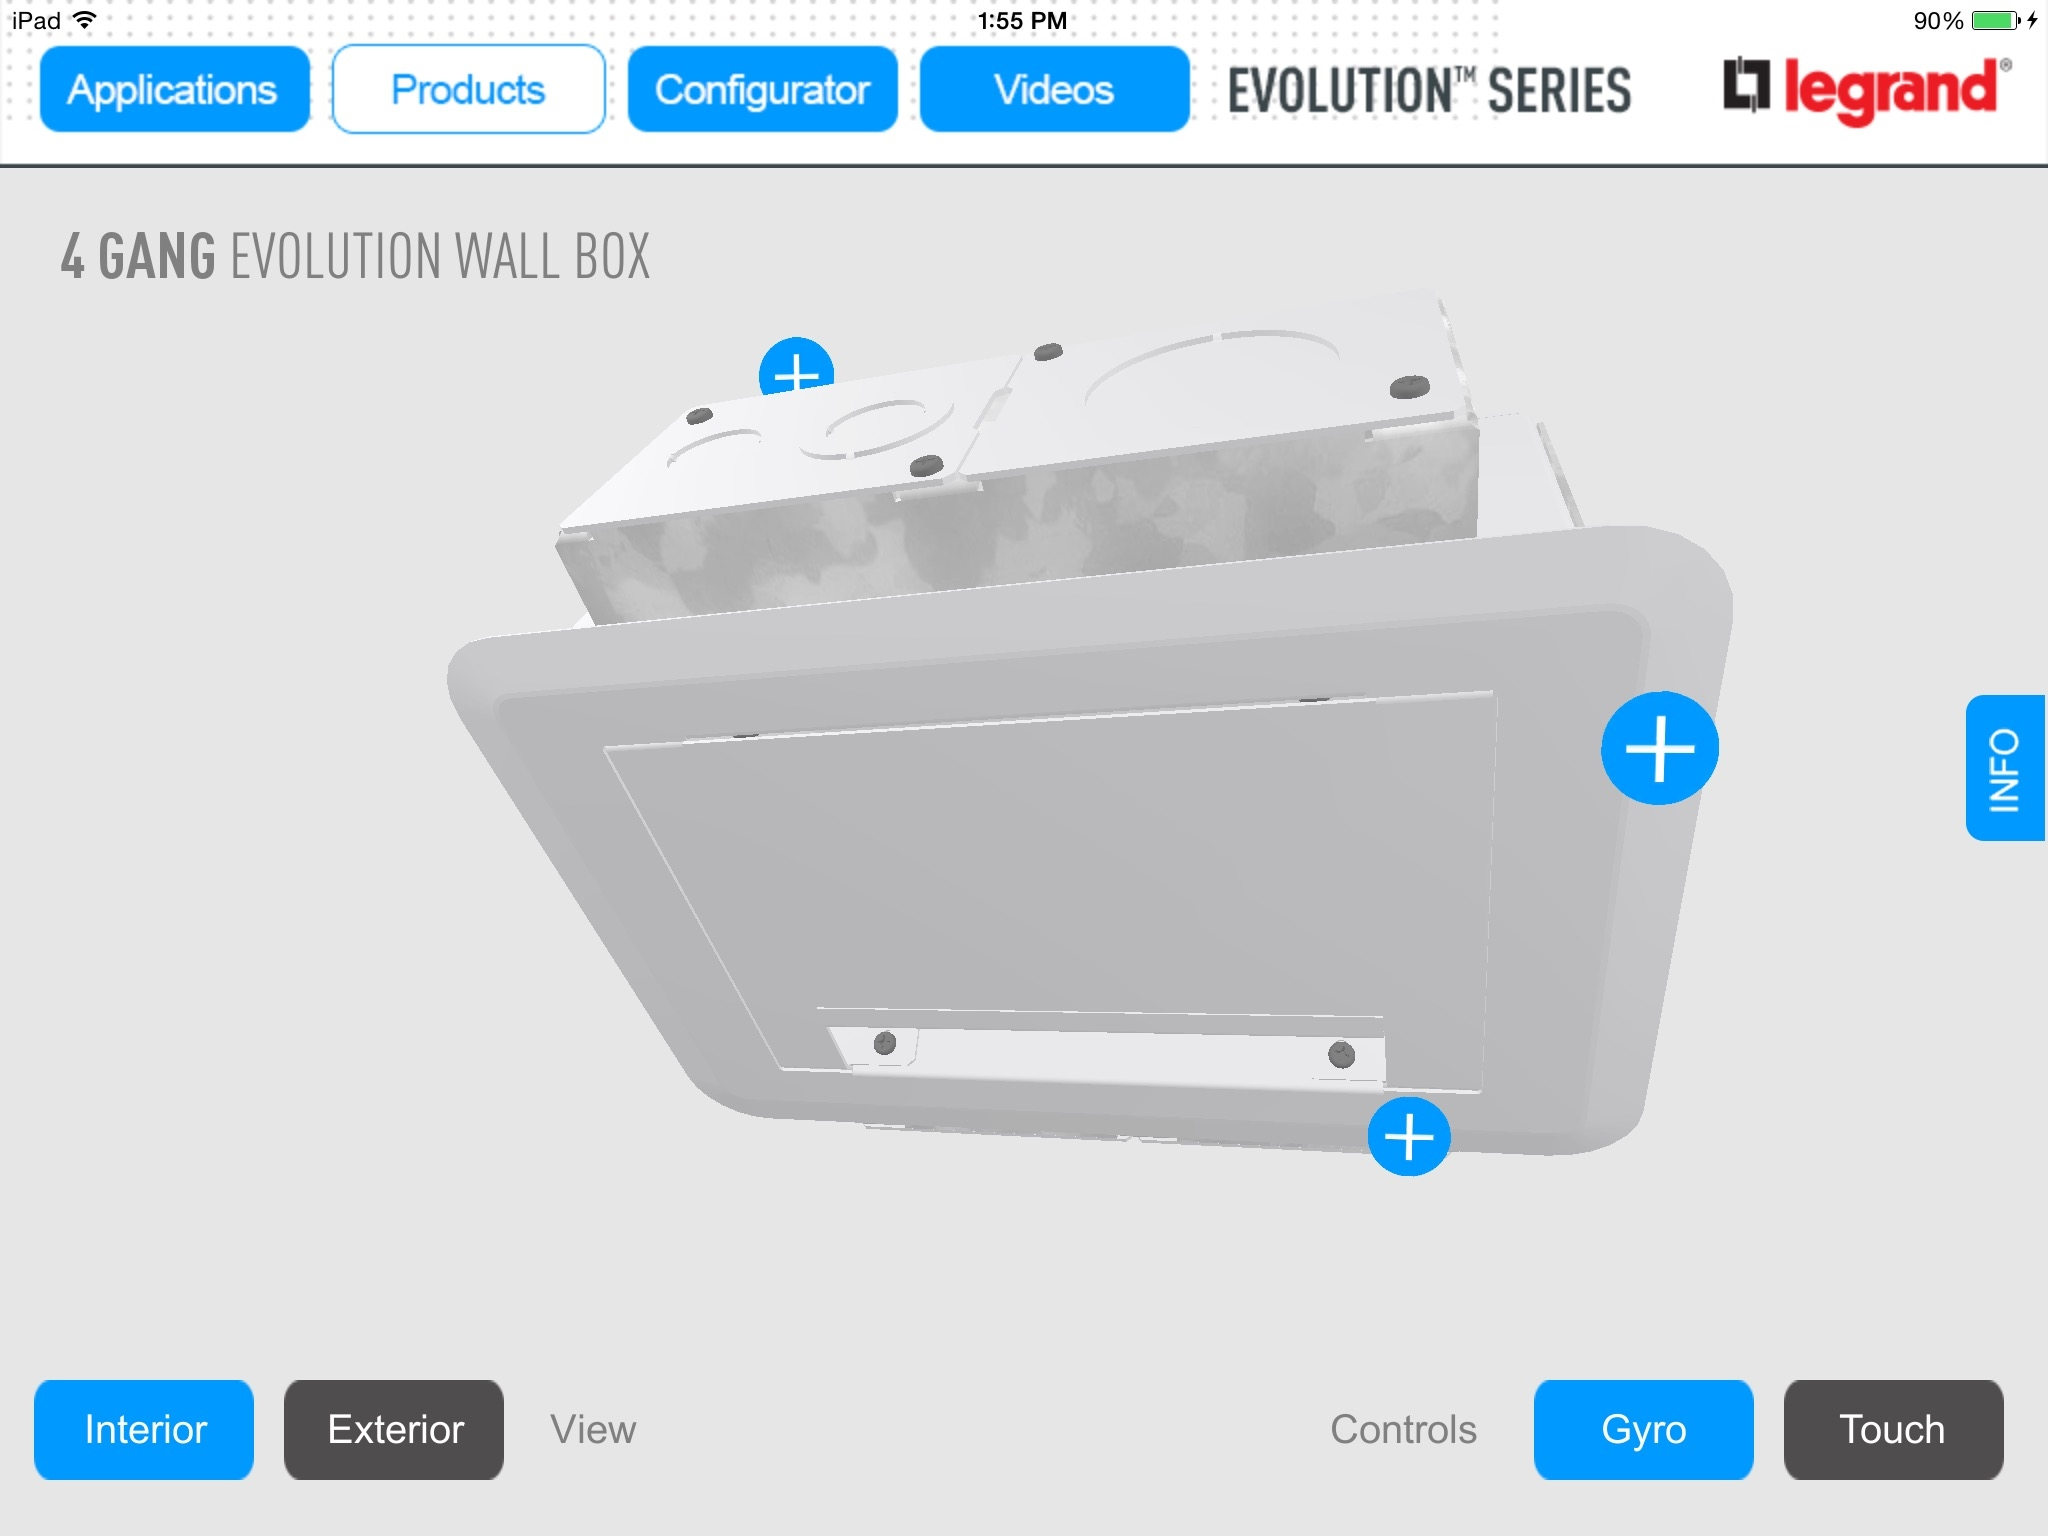 Legrand Evolution Mobile App 3D Product Rotation Screen - Habanero